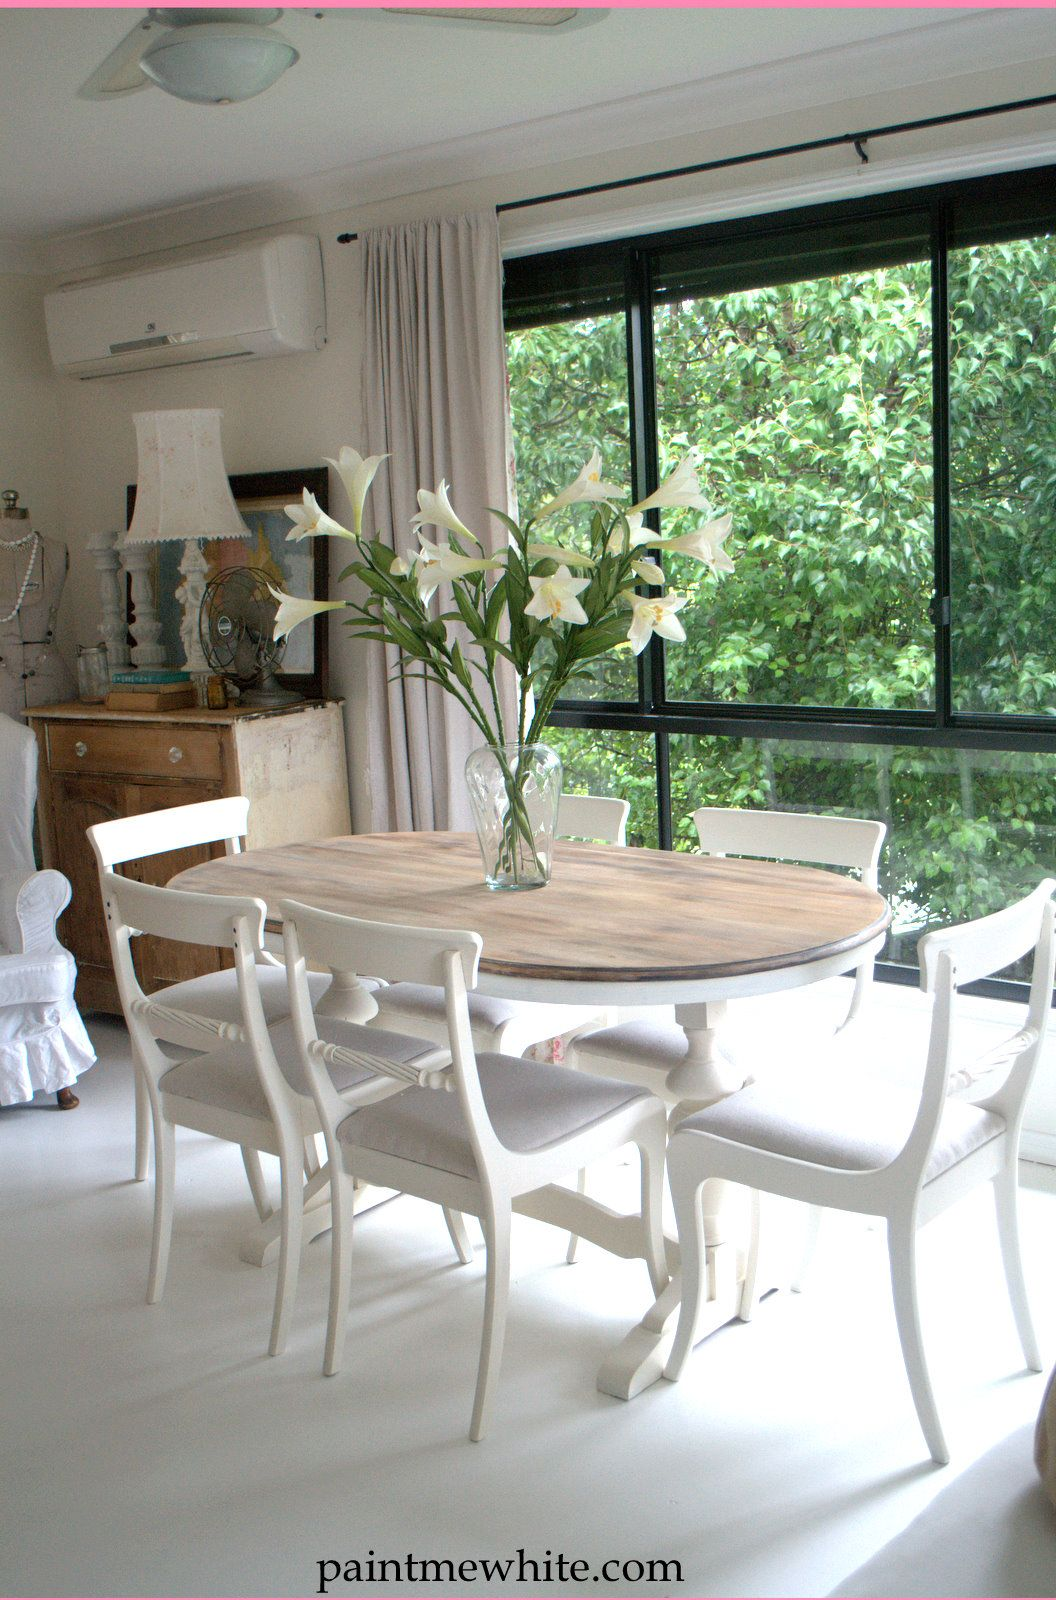 Paint me white dining table makeover ideas diy for Painting dining room table ideas